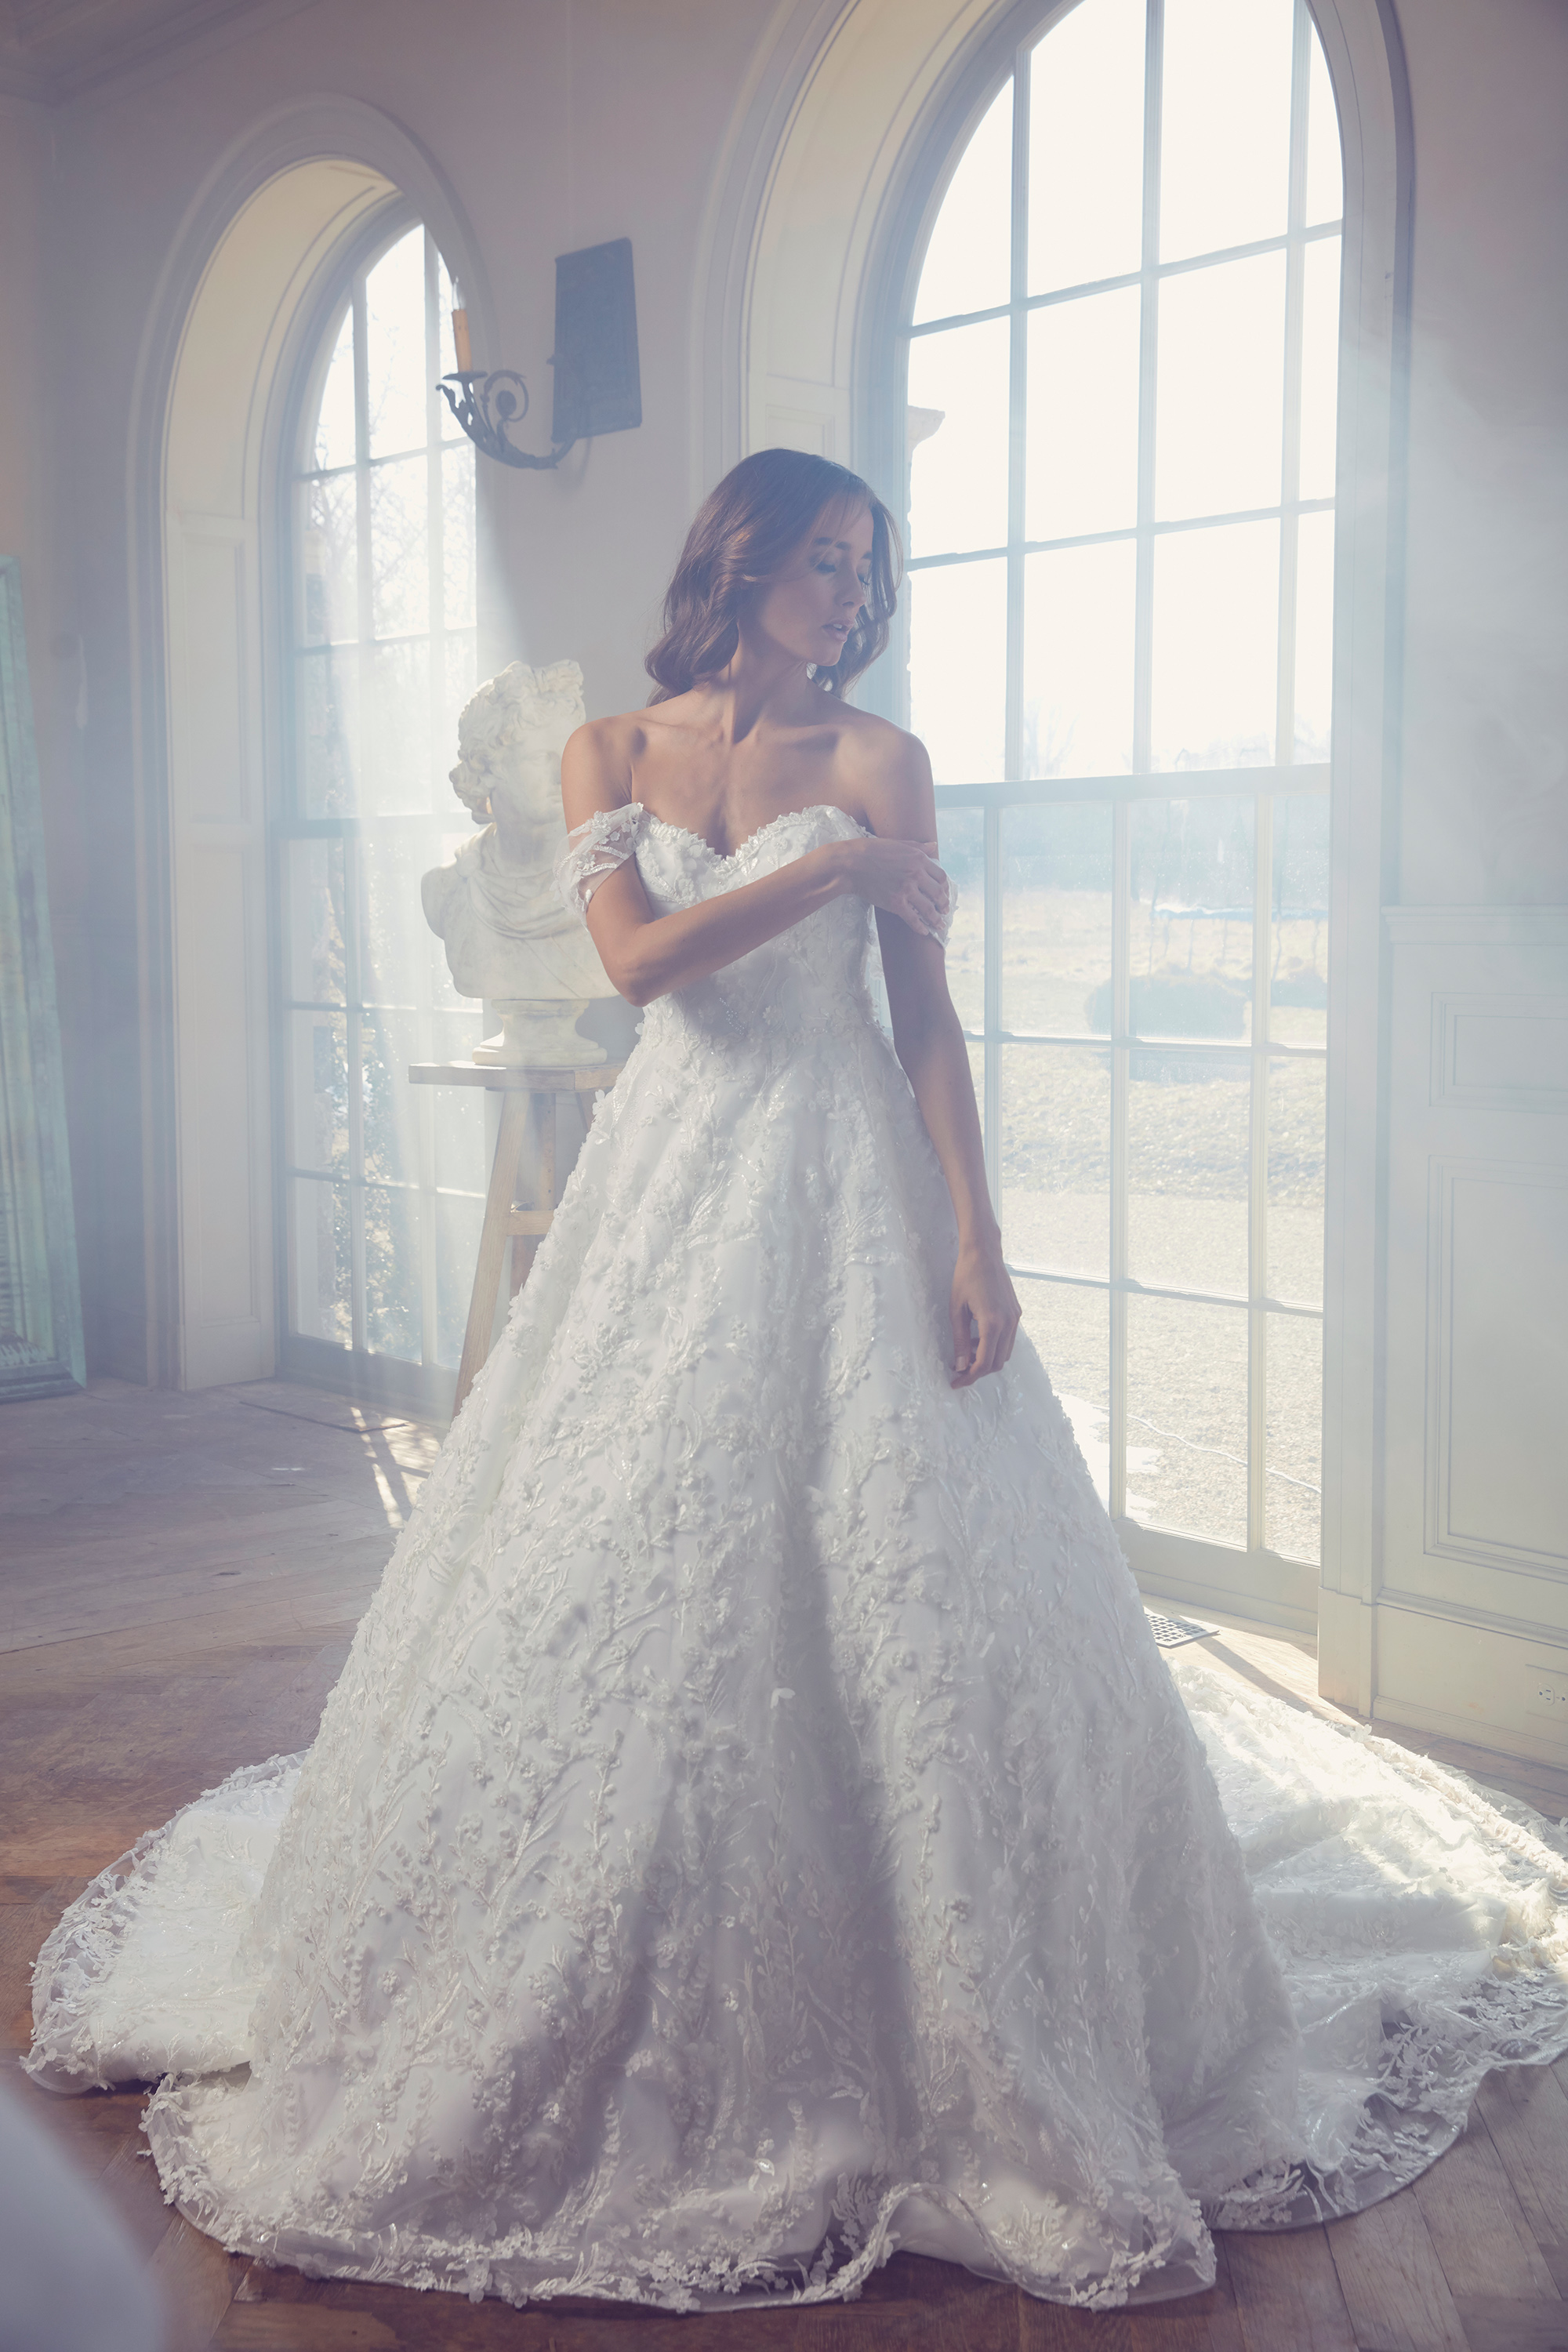 sareh nouri wedding dress spring 2019 sweetheart off the shoulder a-line gown